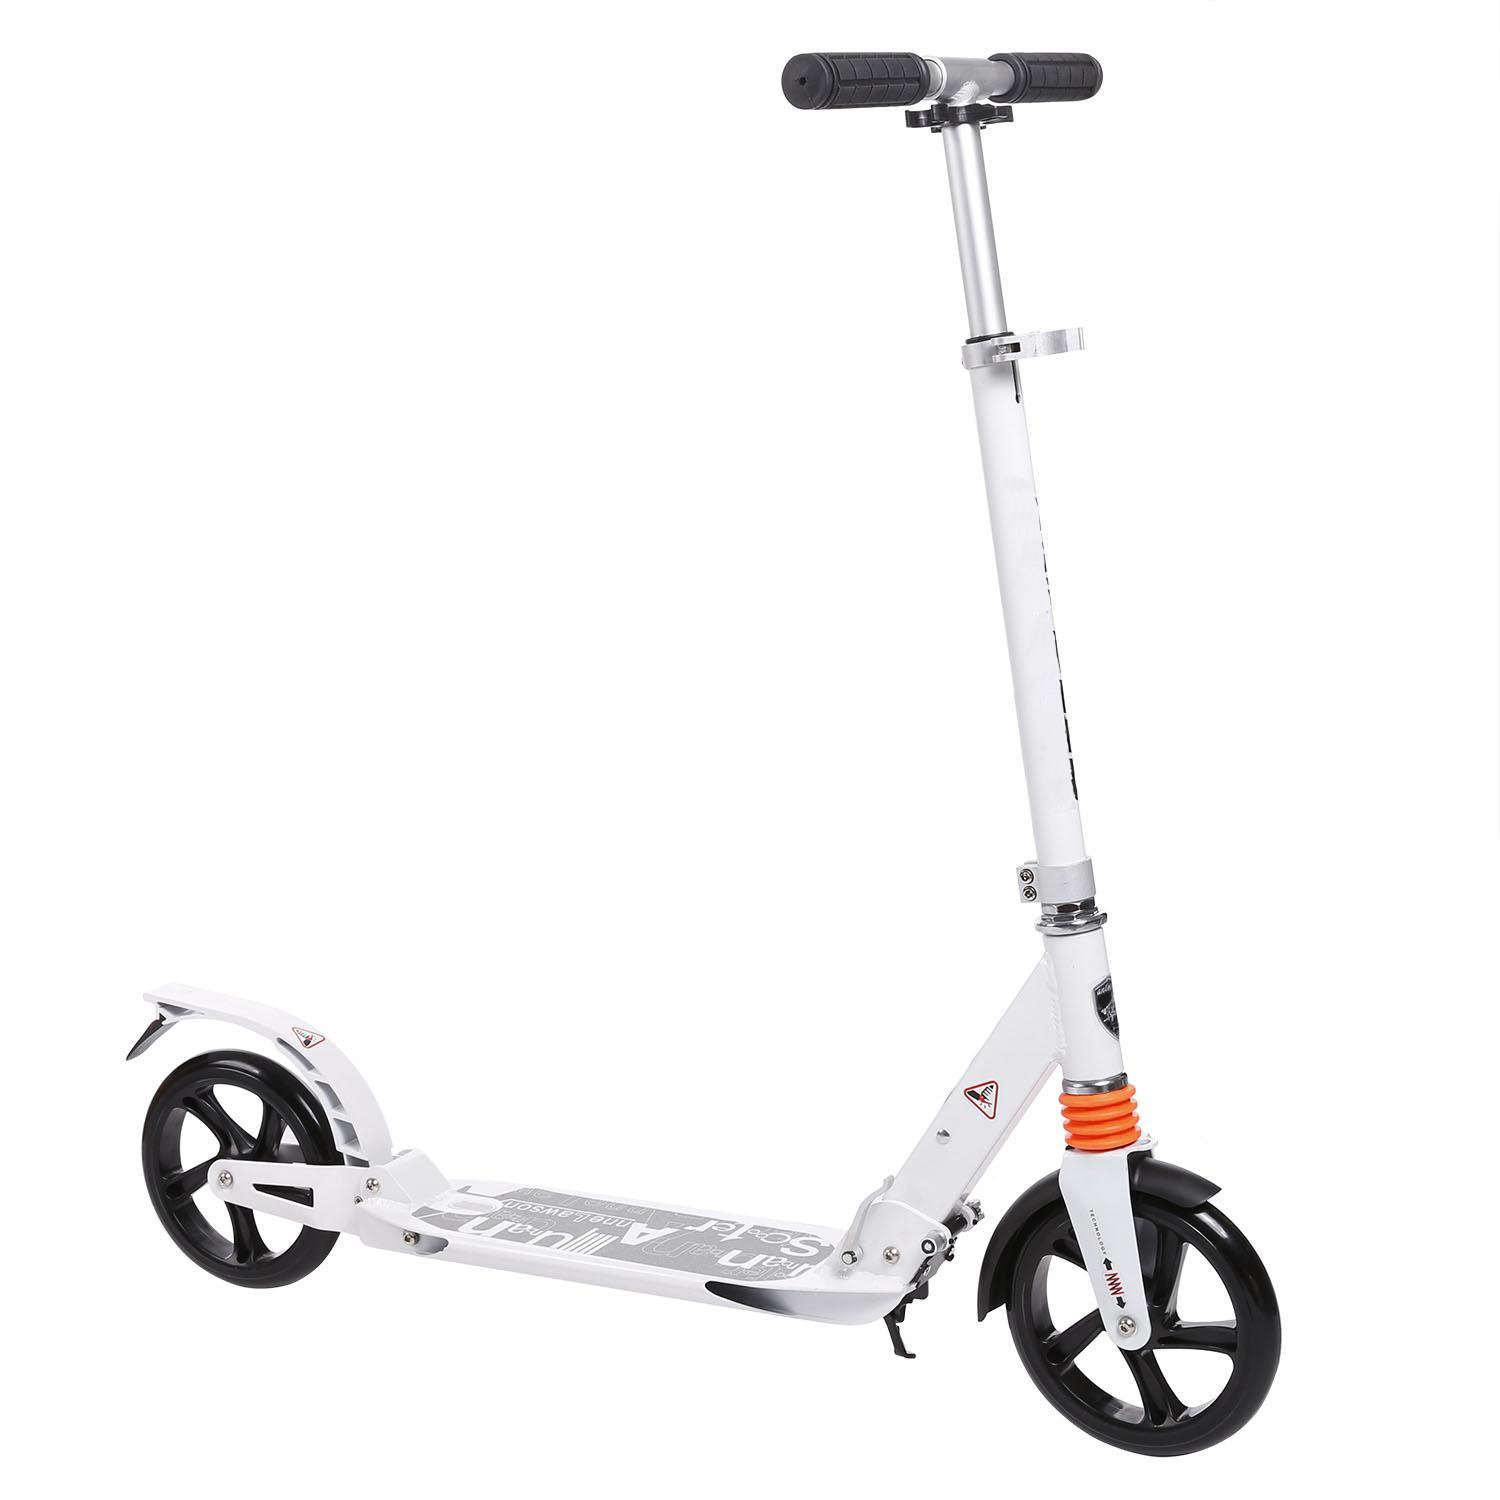 Vansop 2 Wheel Scooter Lightweight Height Adjustable Aluminum Alloy T-Style Foldable City Urban Commuter Street Push Scooter US Stock